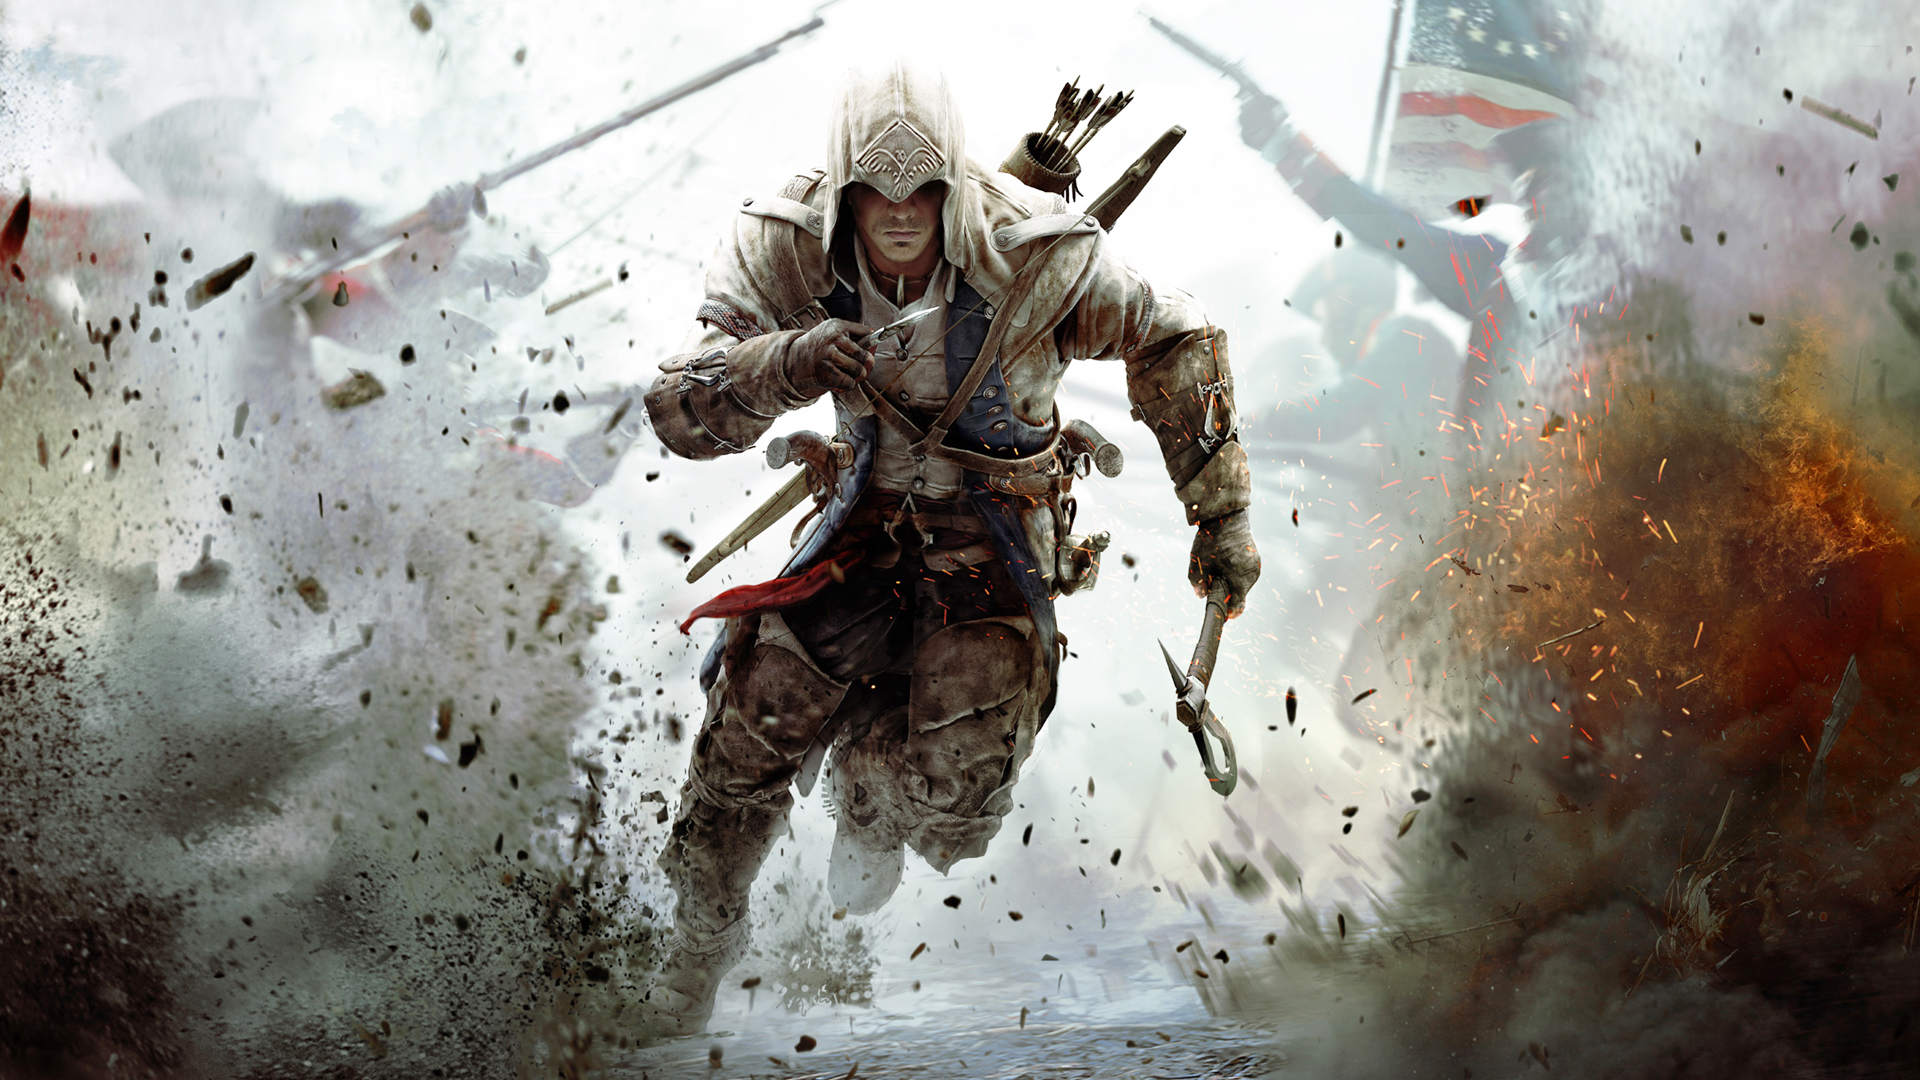 Assassin's Creed III Remastered PC Specs Shared by Ubisoft